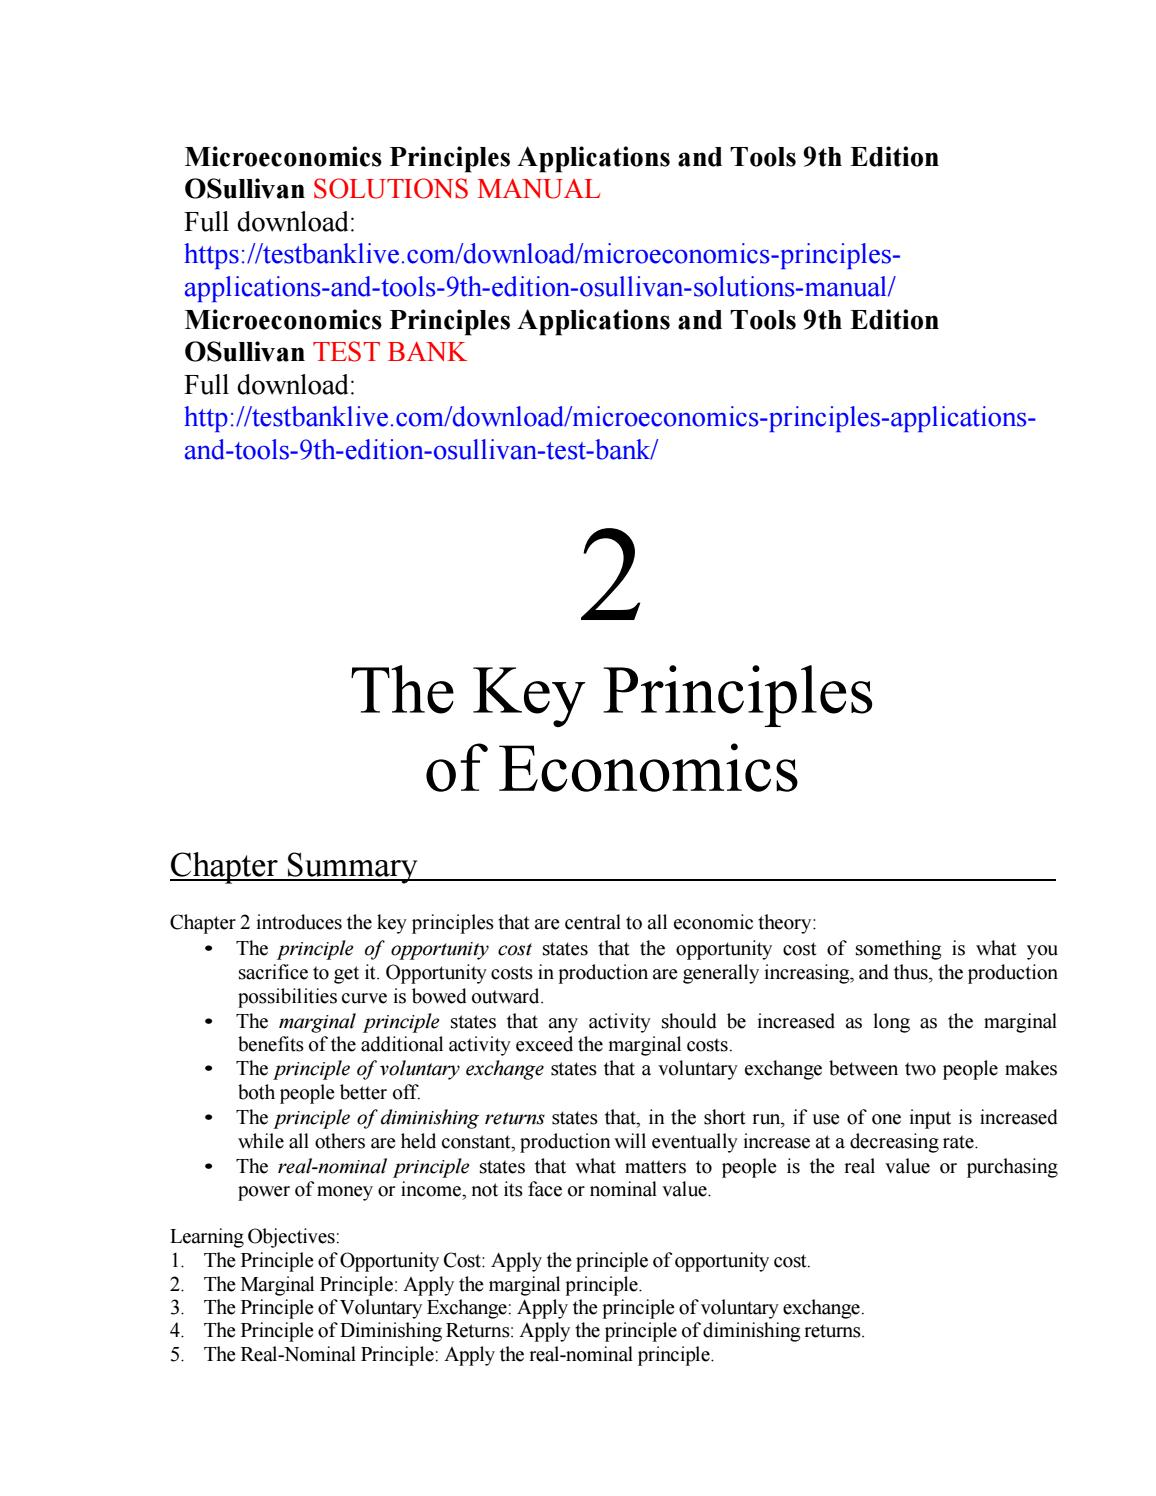 Microeconomics principles applications and tools 9th edition osullivan solutions  manual by SolomonGeber - issuu